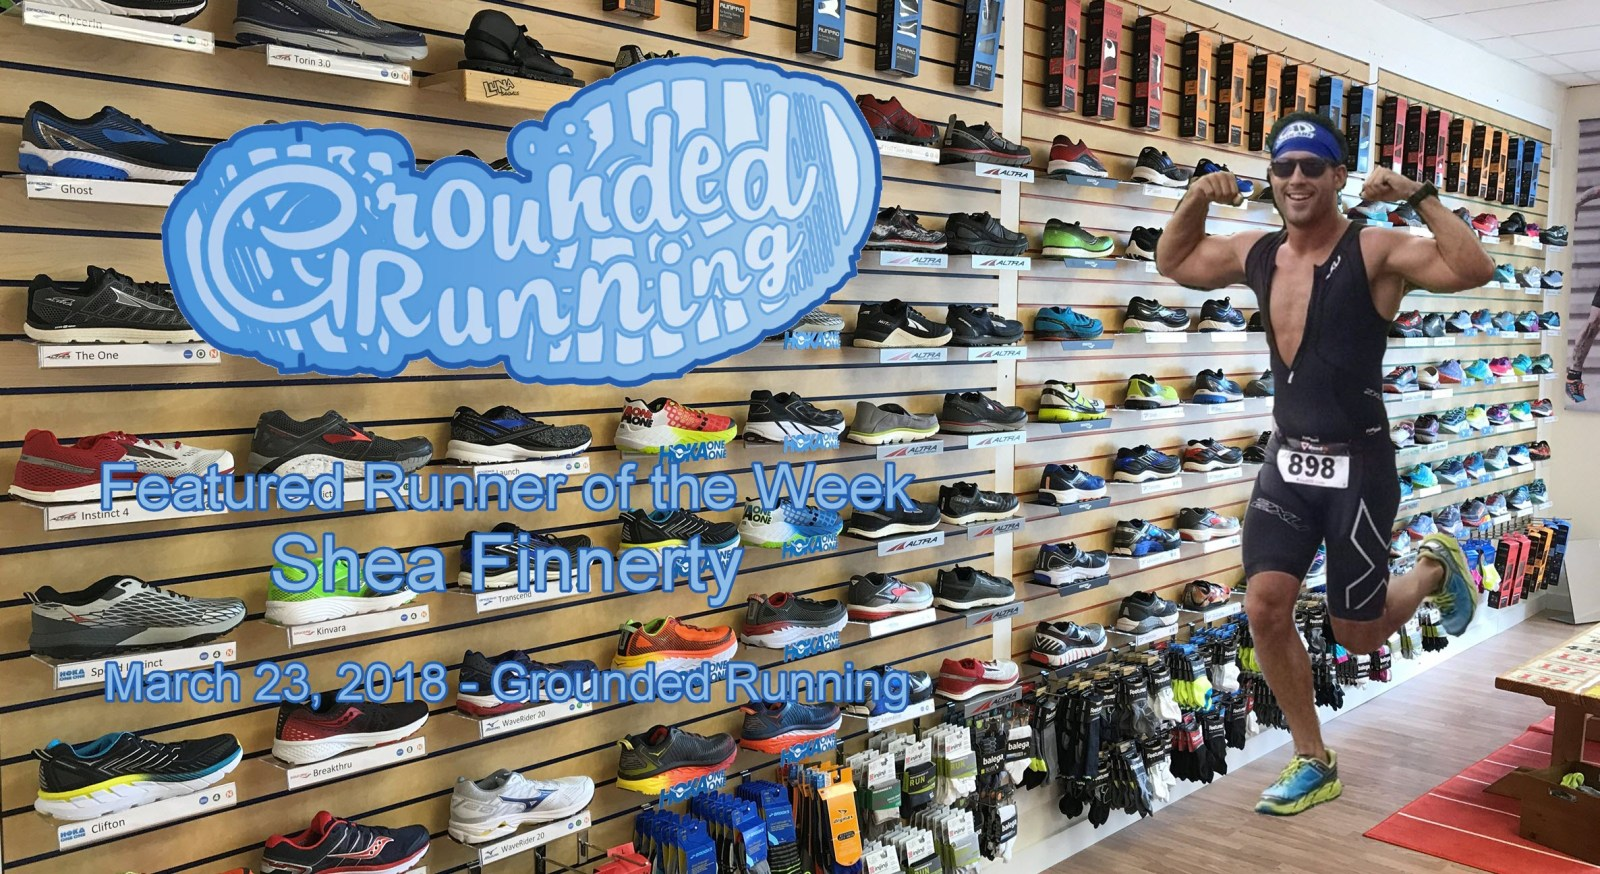 Shea Finnerty - Featured Runner of the Week